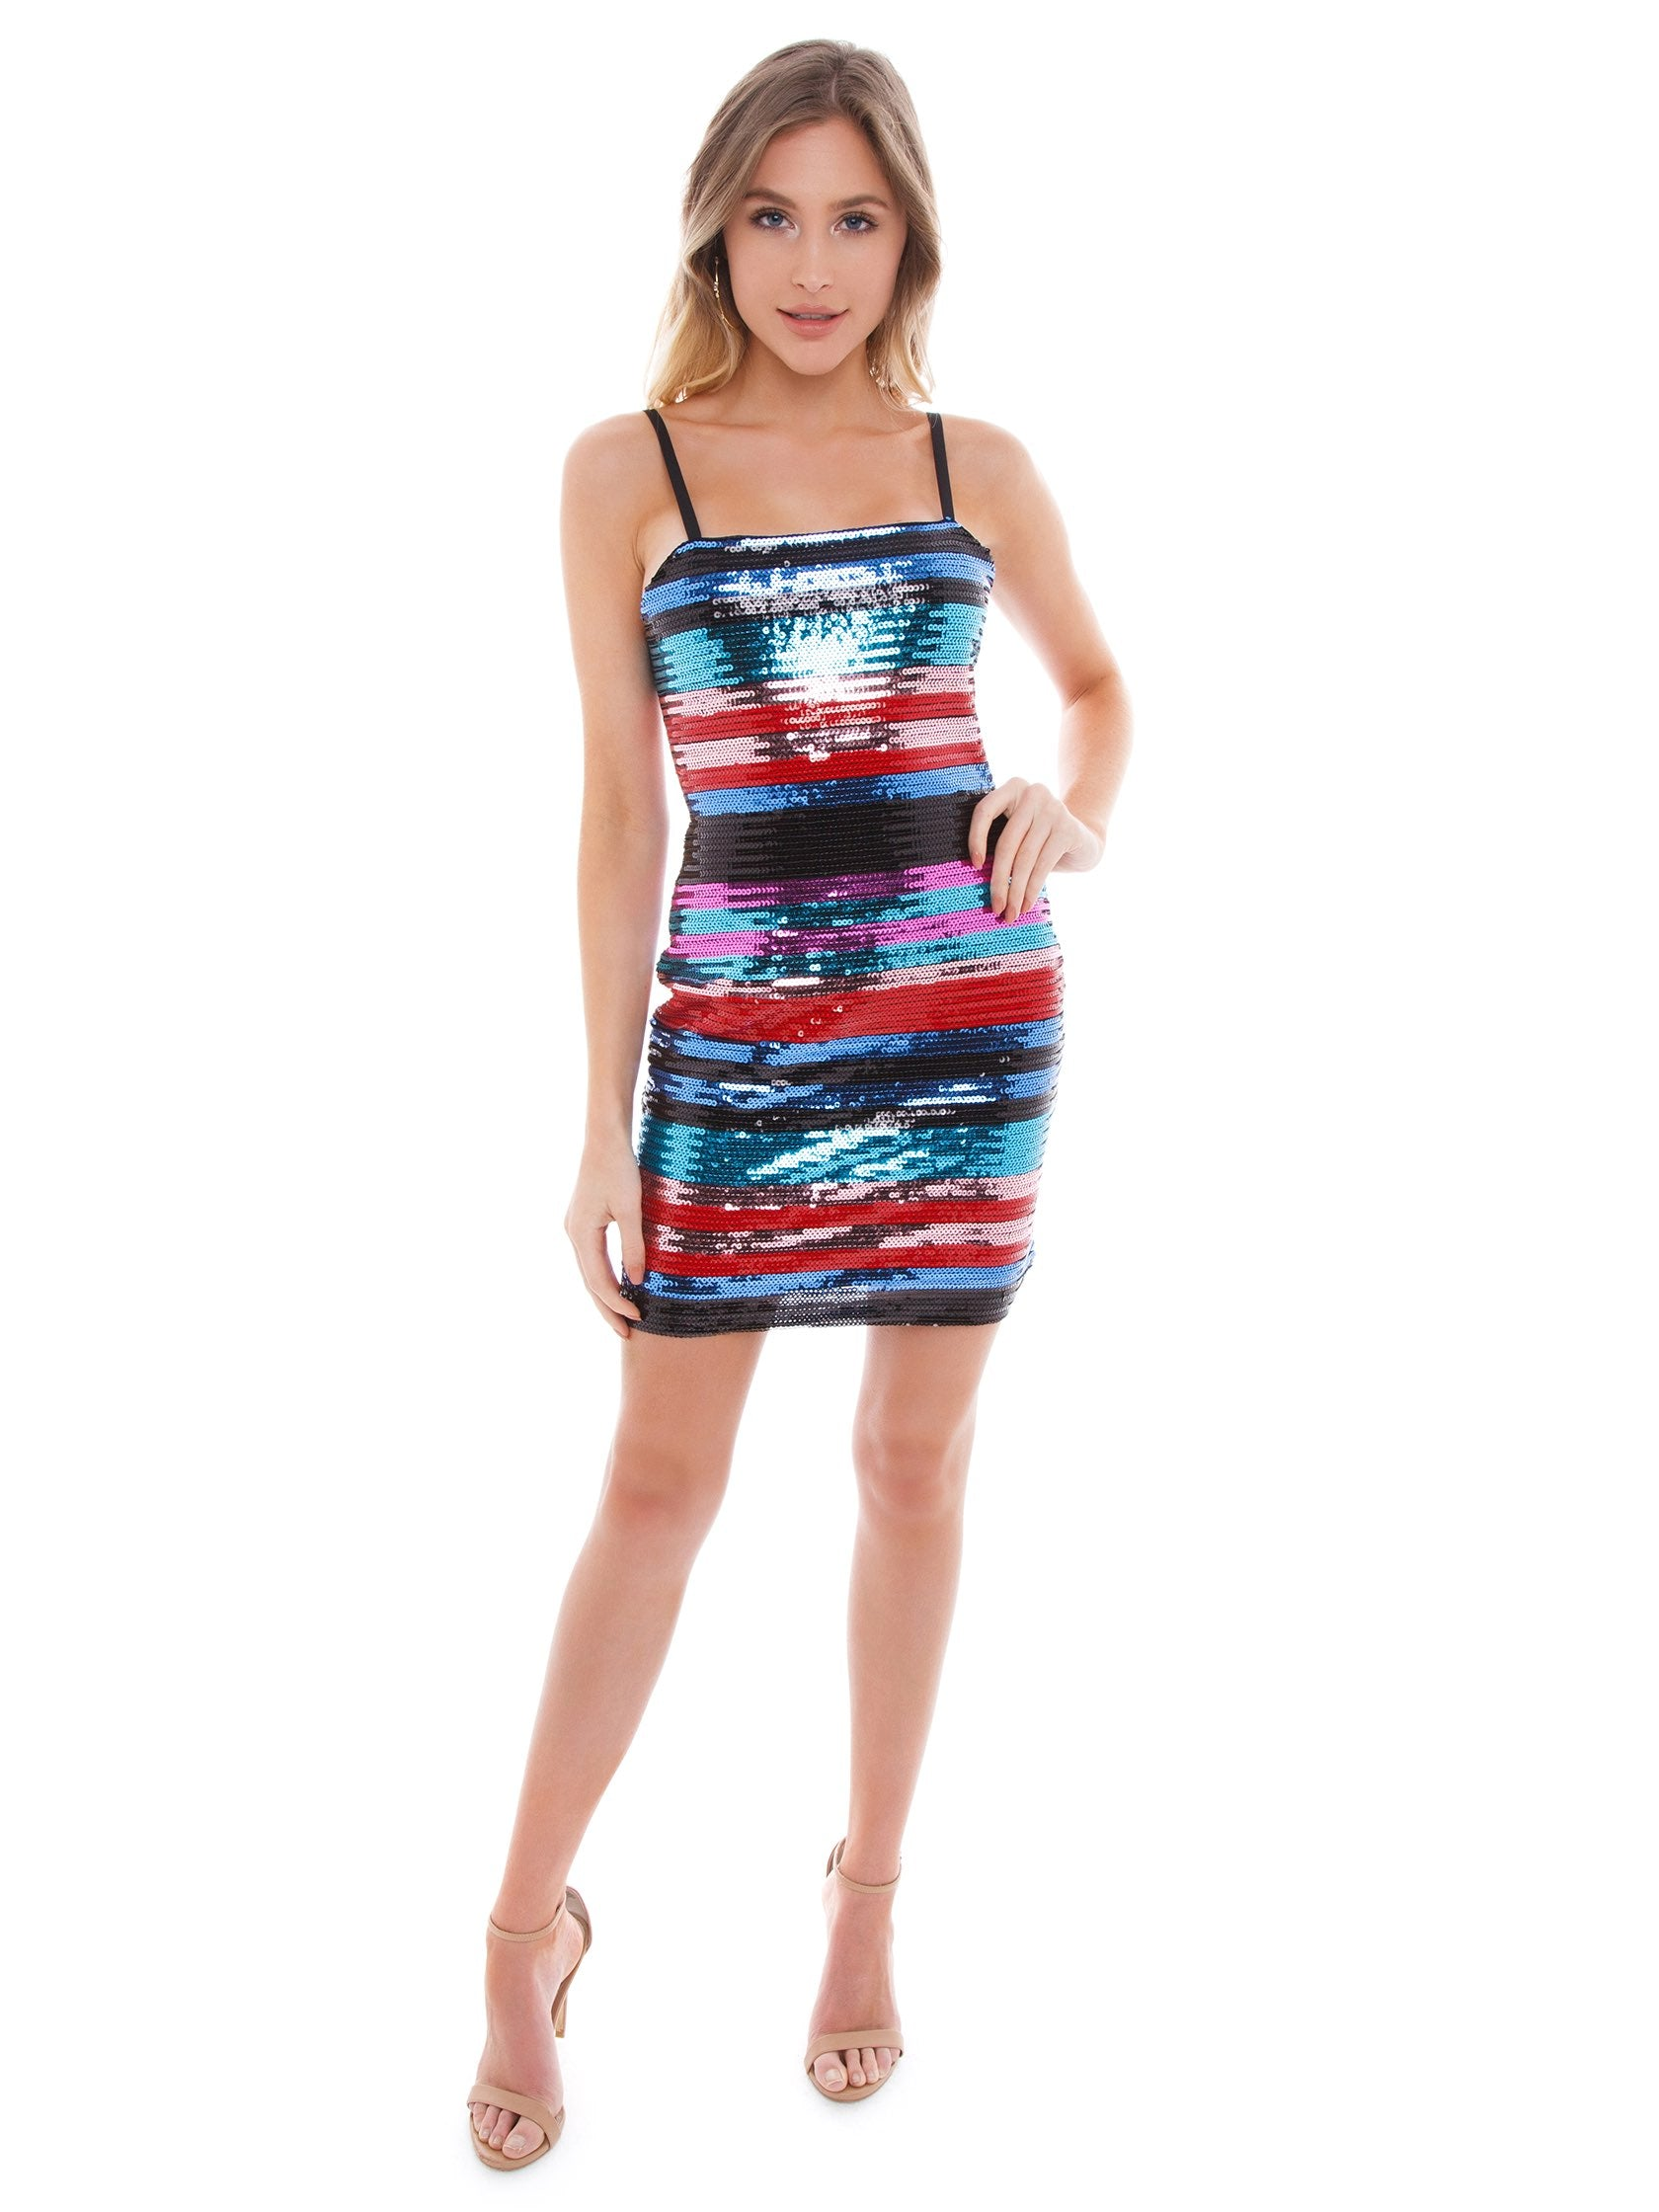 30158dc966666 Girl outfit in a dress rental from WAYF called Manfi Stripe Sequin Dress